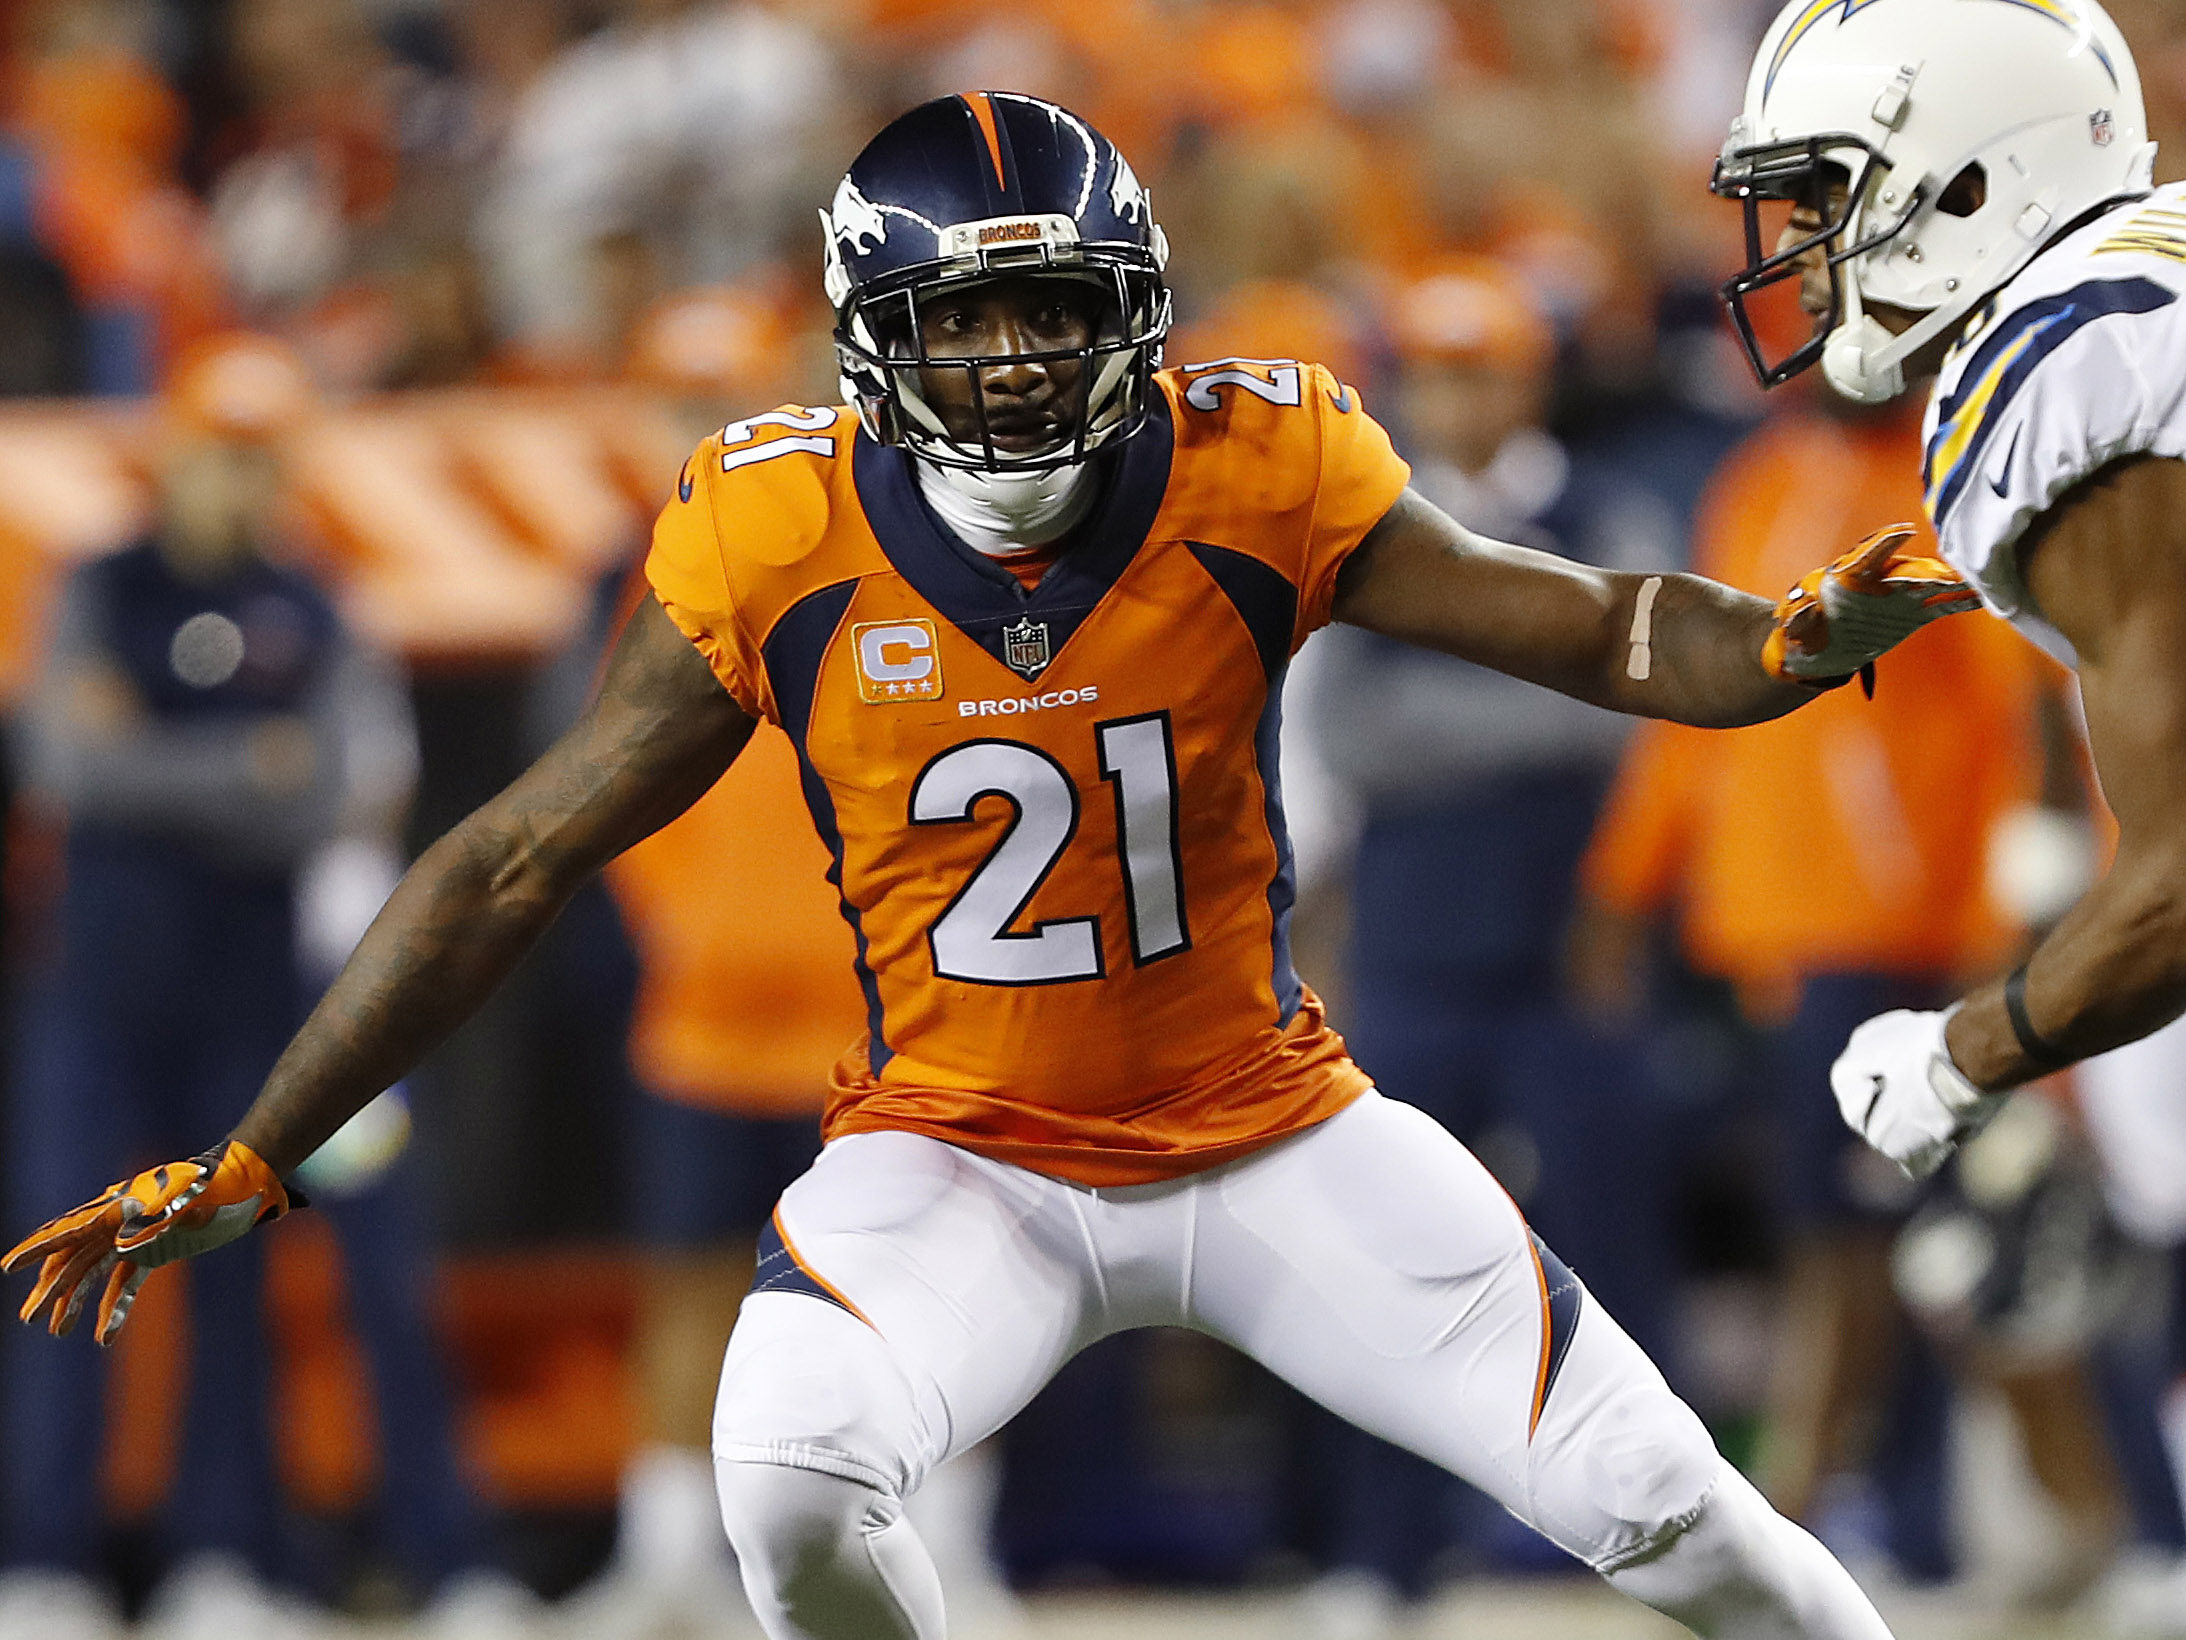 42e07f4a Aqib Talib excited to join Marcus Peters, L.A. Rams - NFL.com